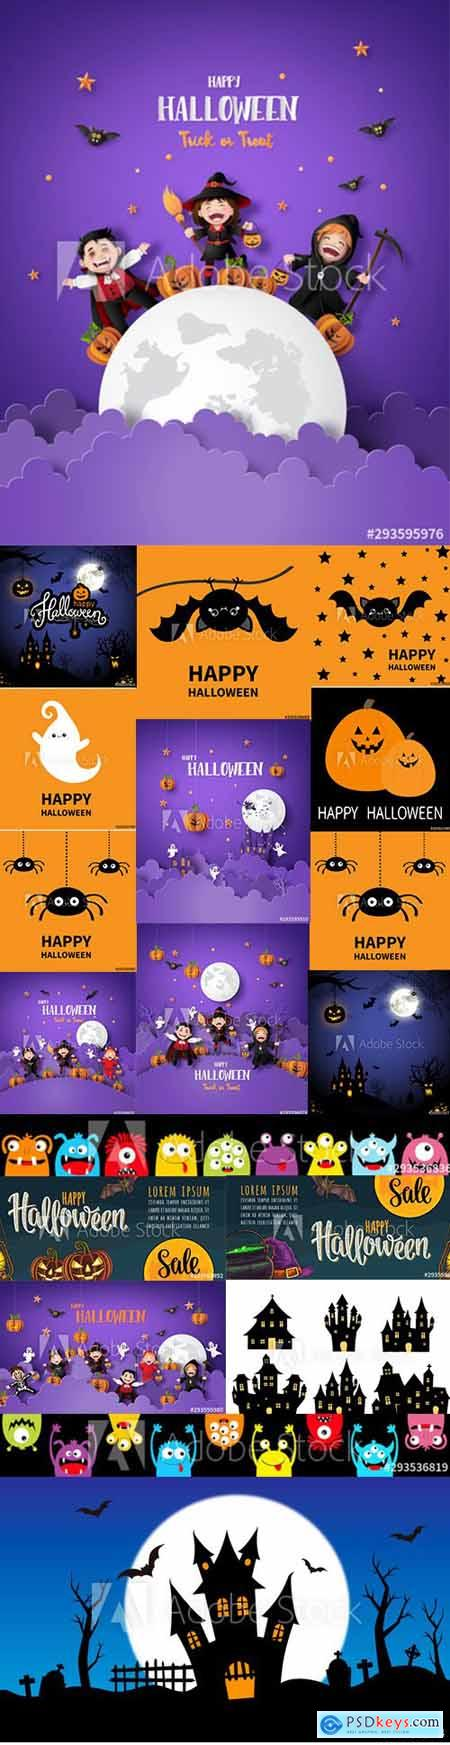 Vector Set of Happy Halloween Illustrations with Cute Cartoon Caracher